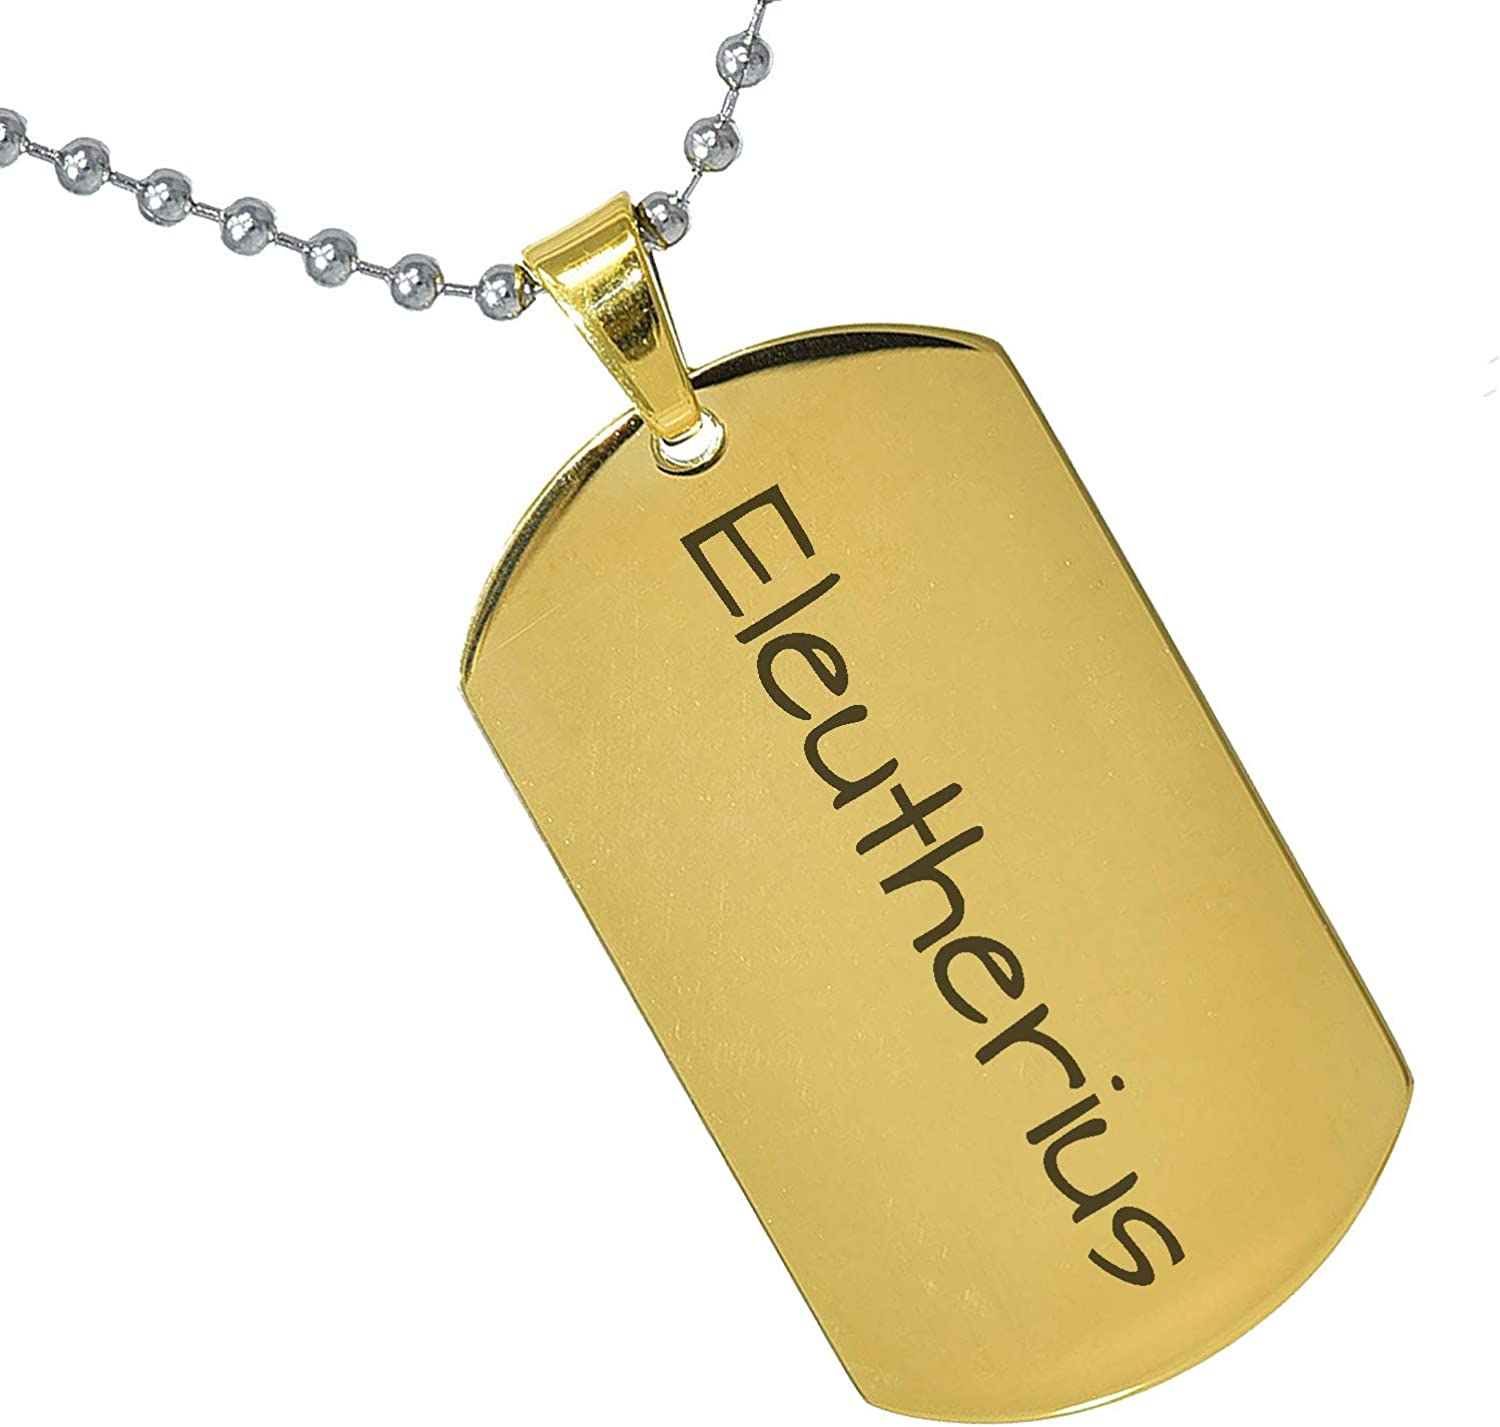 Stainless Steel Silver Gold Black Rose Gold Color Baby Name Eleutherius Engraved Personalized Gifts For Son Daughter Boyfriend Girlfriend Initial Customizable Pendant Necklace Dog Tags 24 Ball Chain